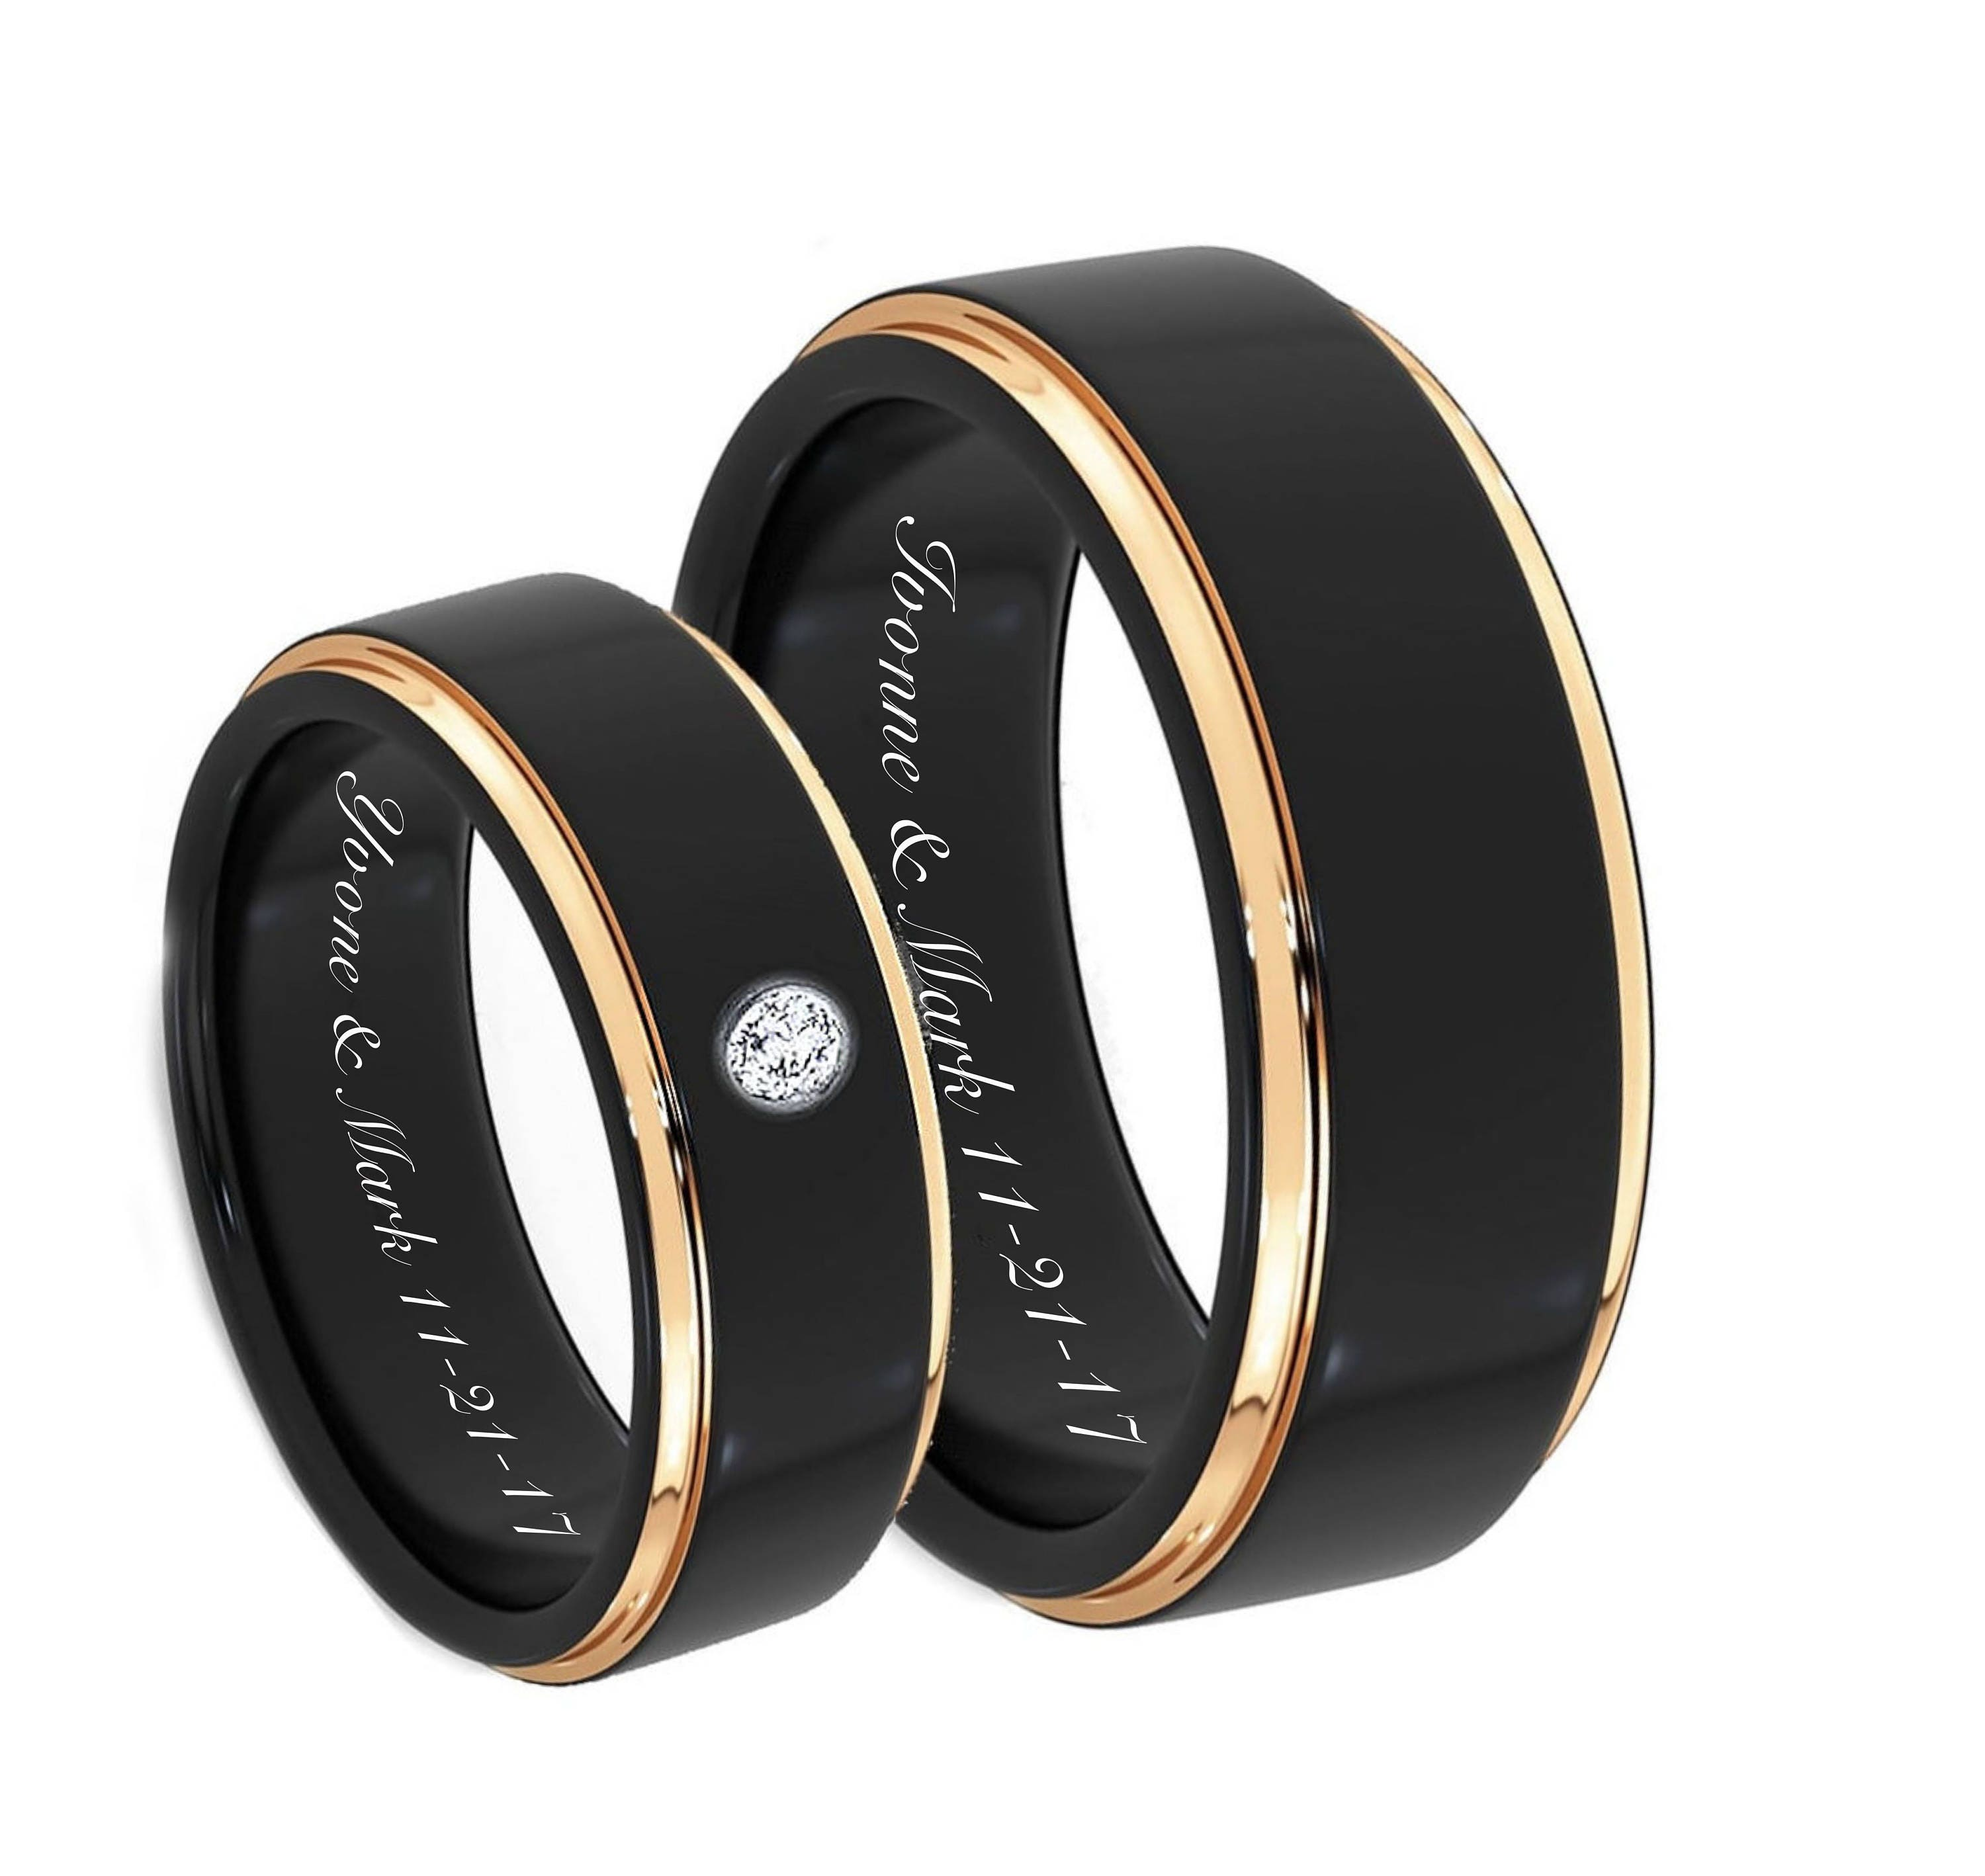 engraved promise rings personalized ring engraved wedding. Black Bedroom Furniture Sets. Home Design Ideas